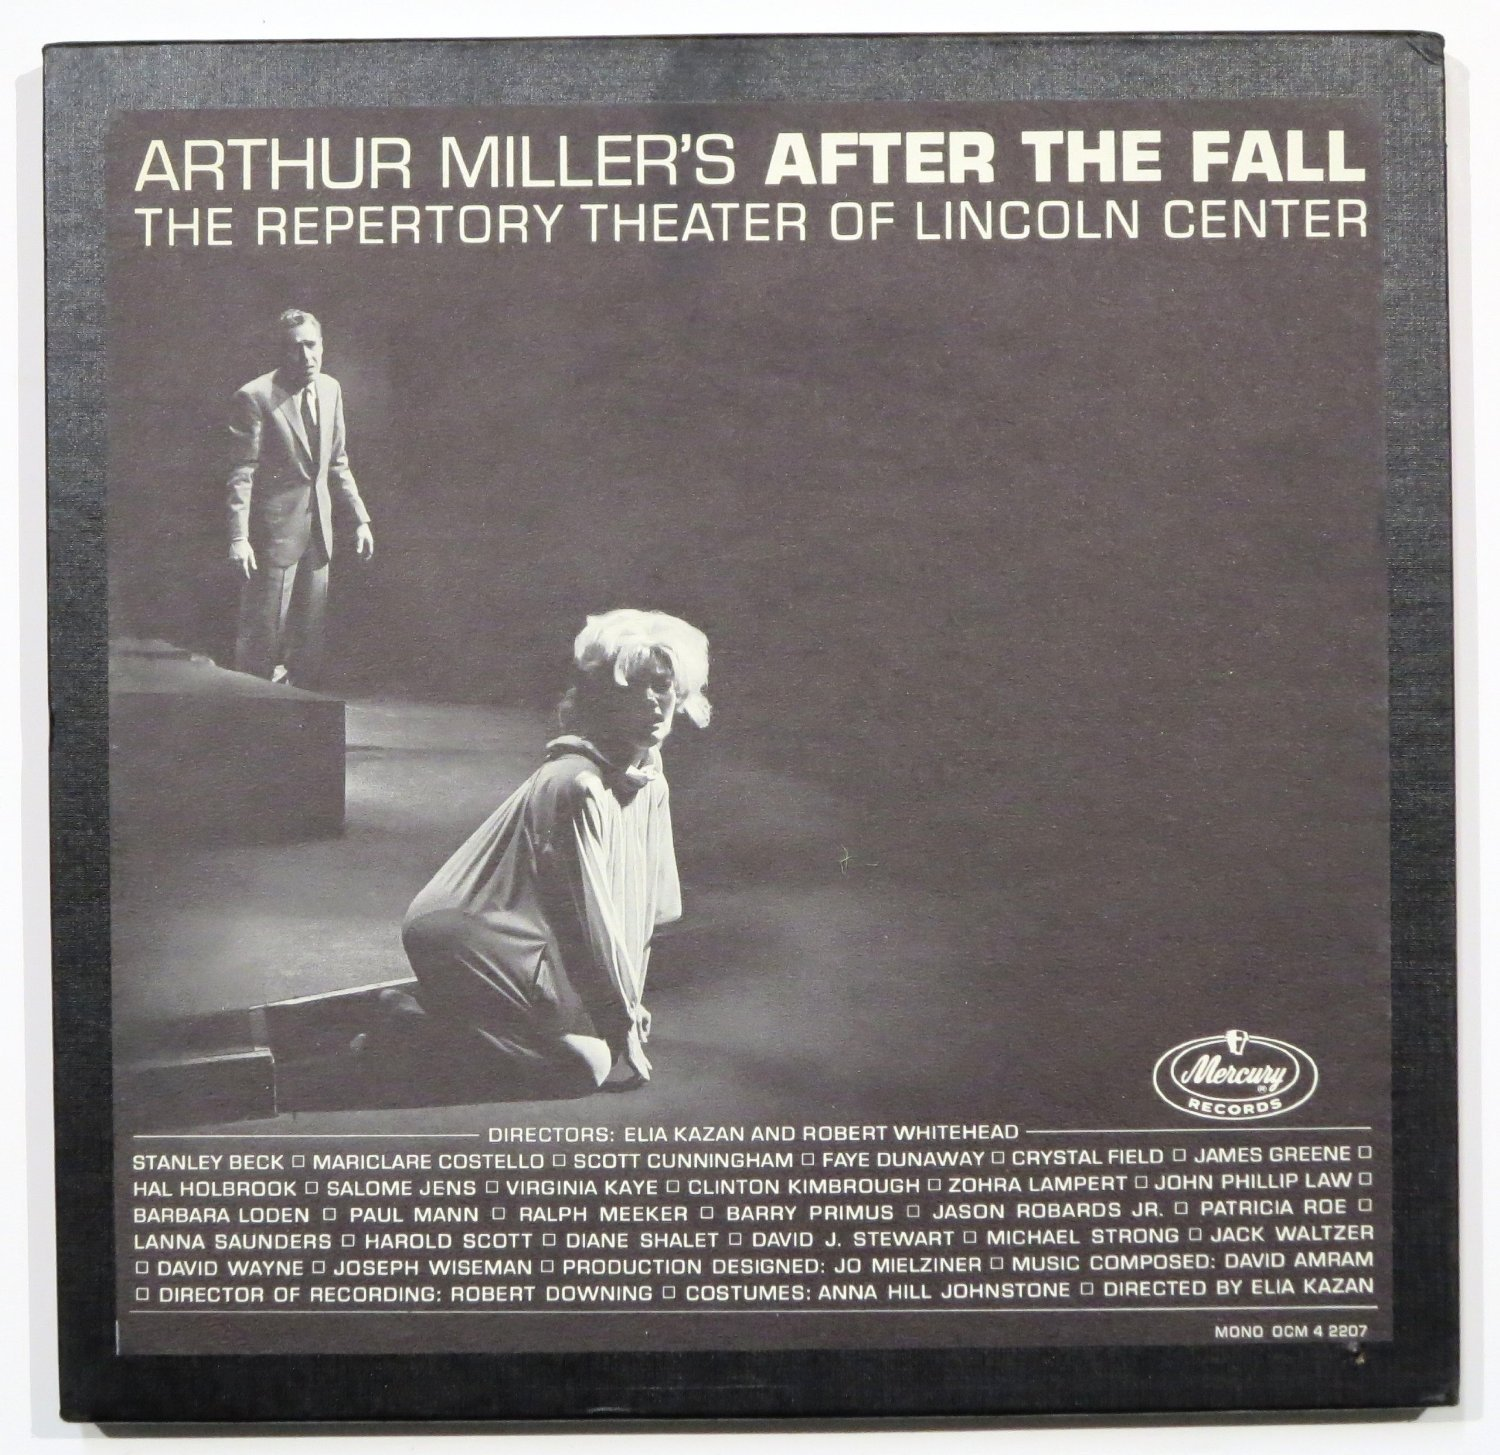 arthur miller elia kazan robert whitehead faye dunaway stanley stanley beck hal holbrook jason robards jr mariclare costello barbara loden crystal field arthur miller s after the fall the repertory theater